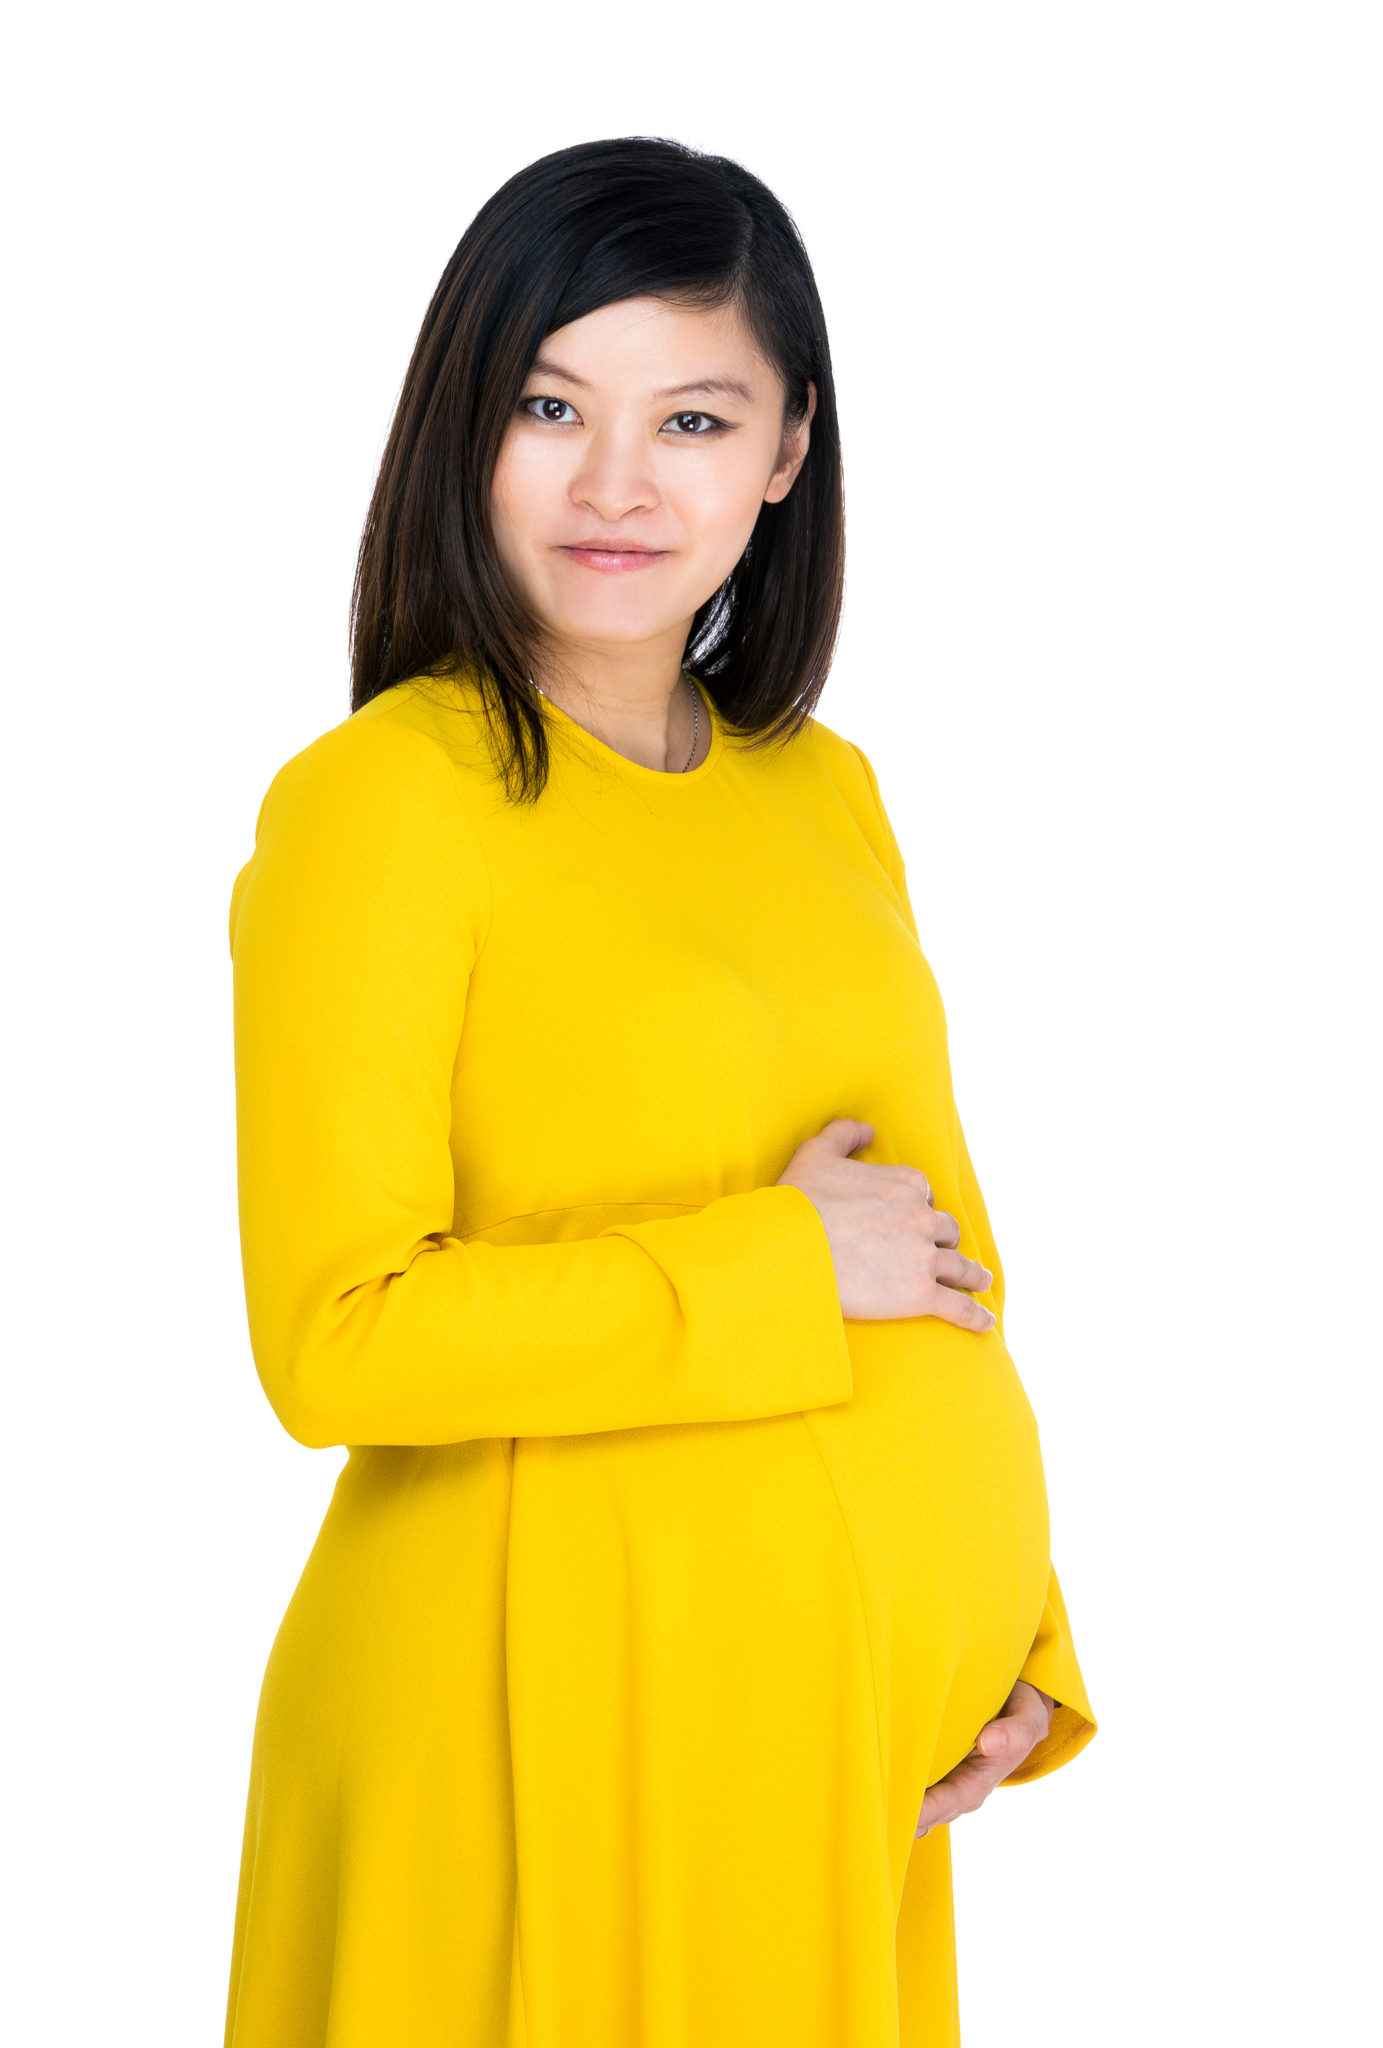 edbb29d47e34d A pregnant woman in a bright yellow dress holds her stomach and smiles at  the camera